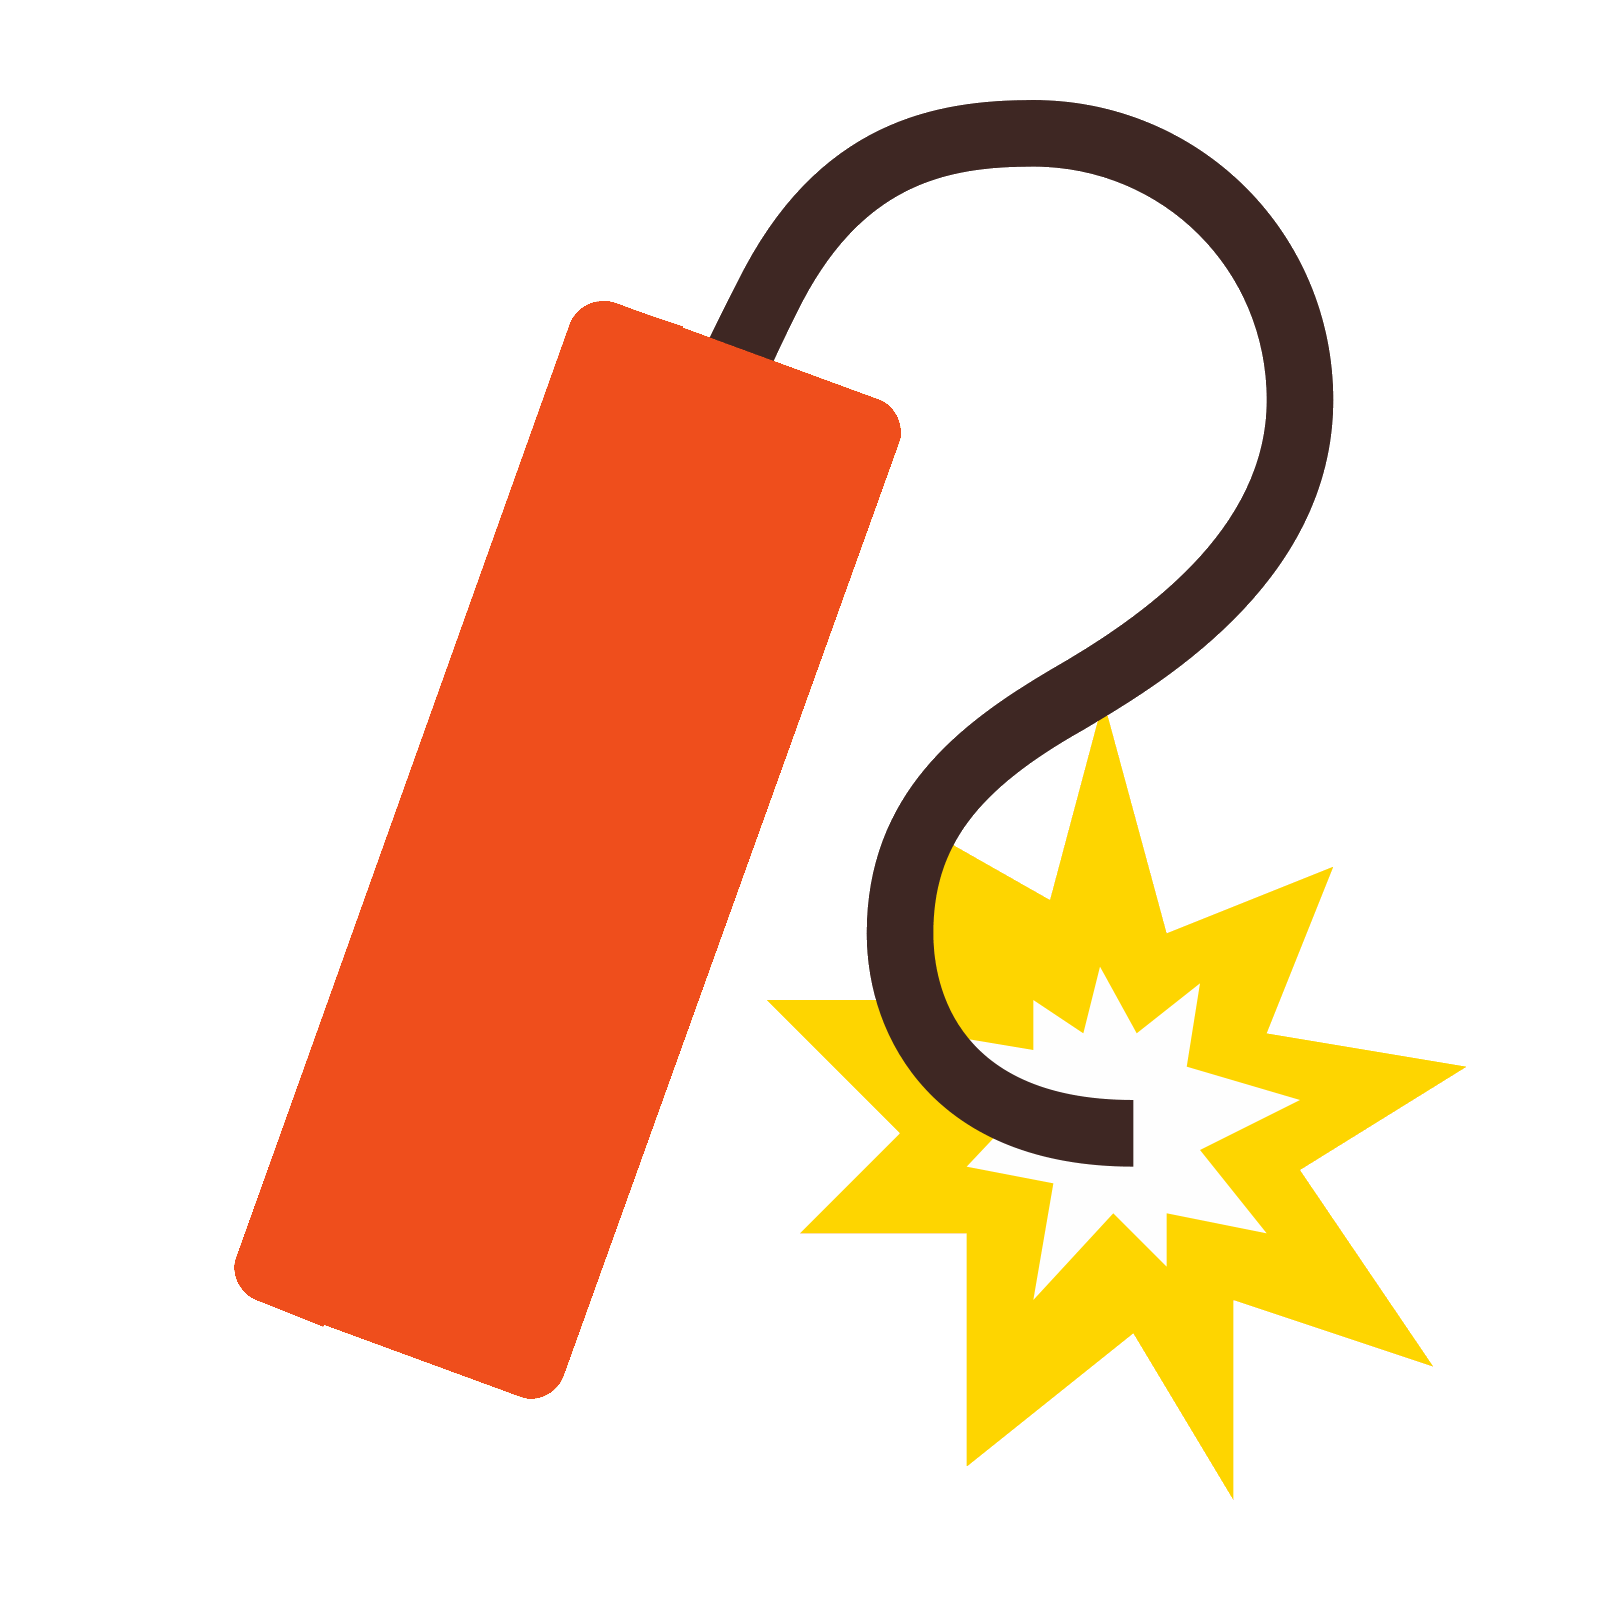 Icon free download png. Dynamite vector royalty free library